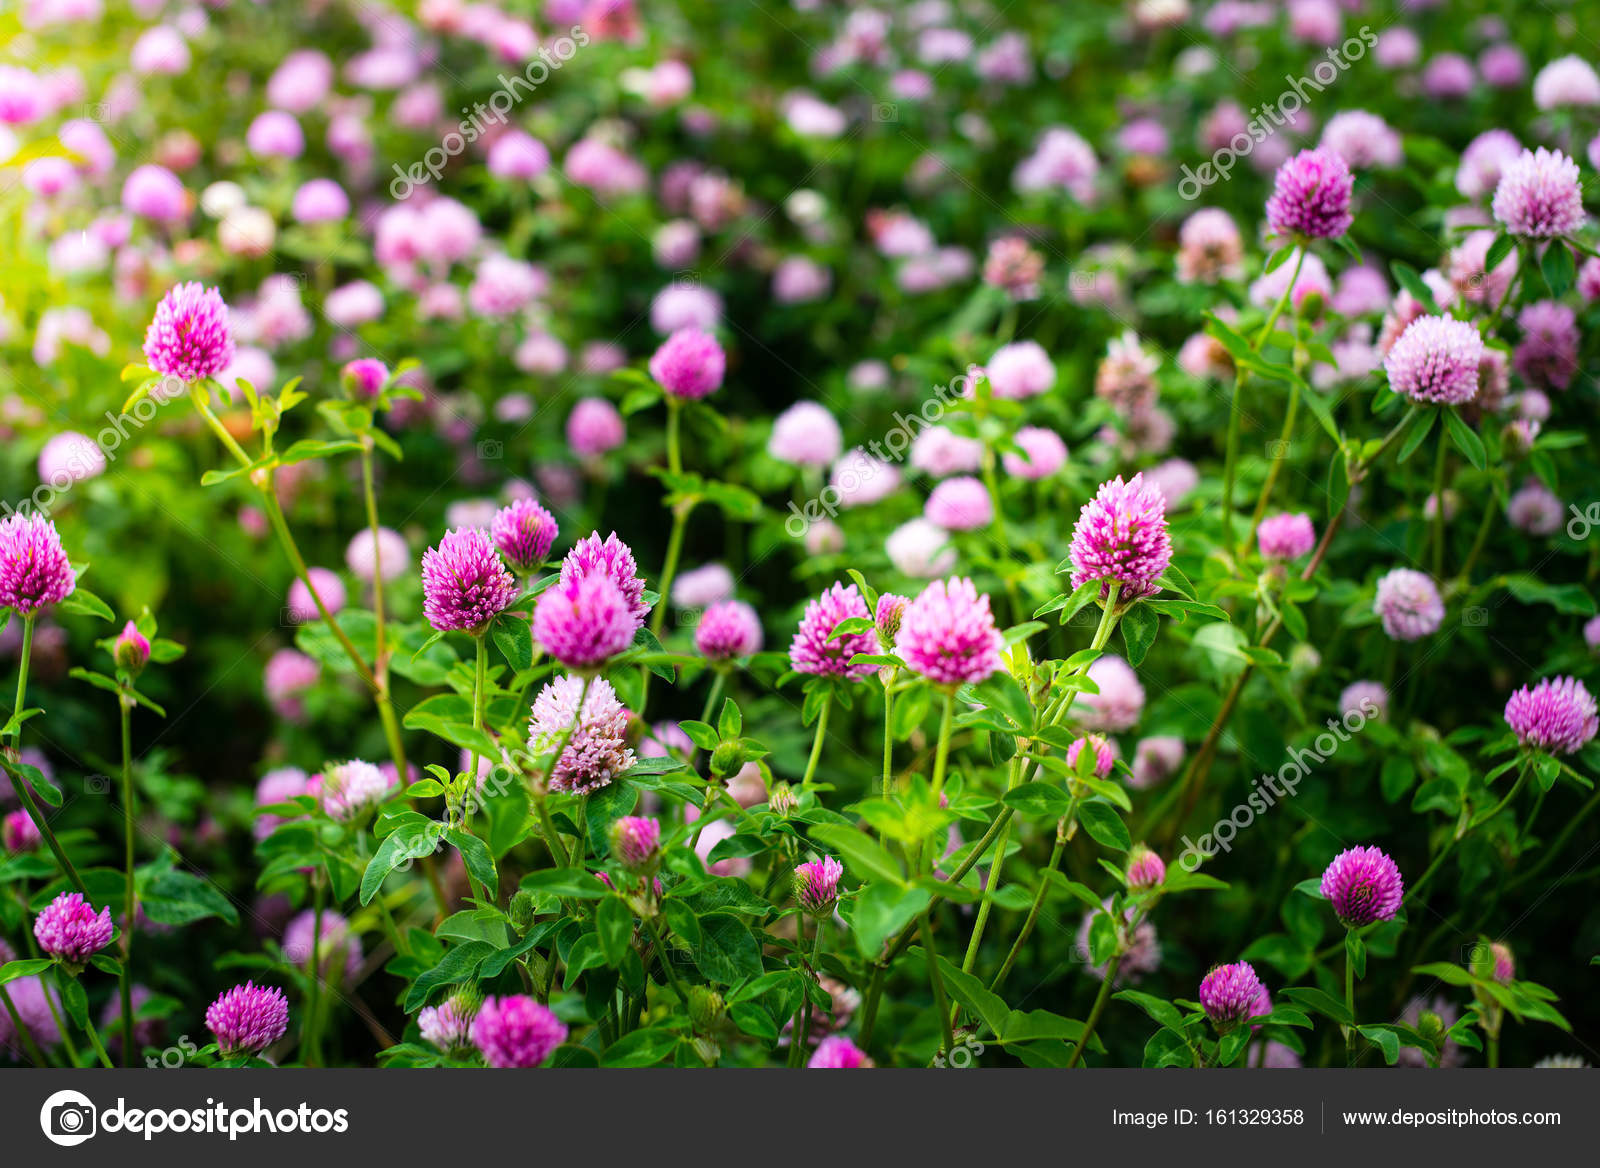 Clover Flowers Trifolium Pratense Outside In A Field Stock Photo